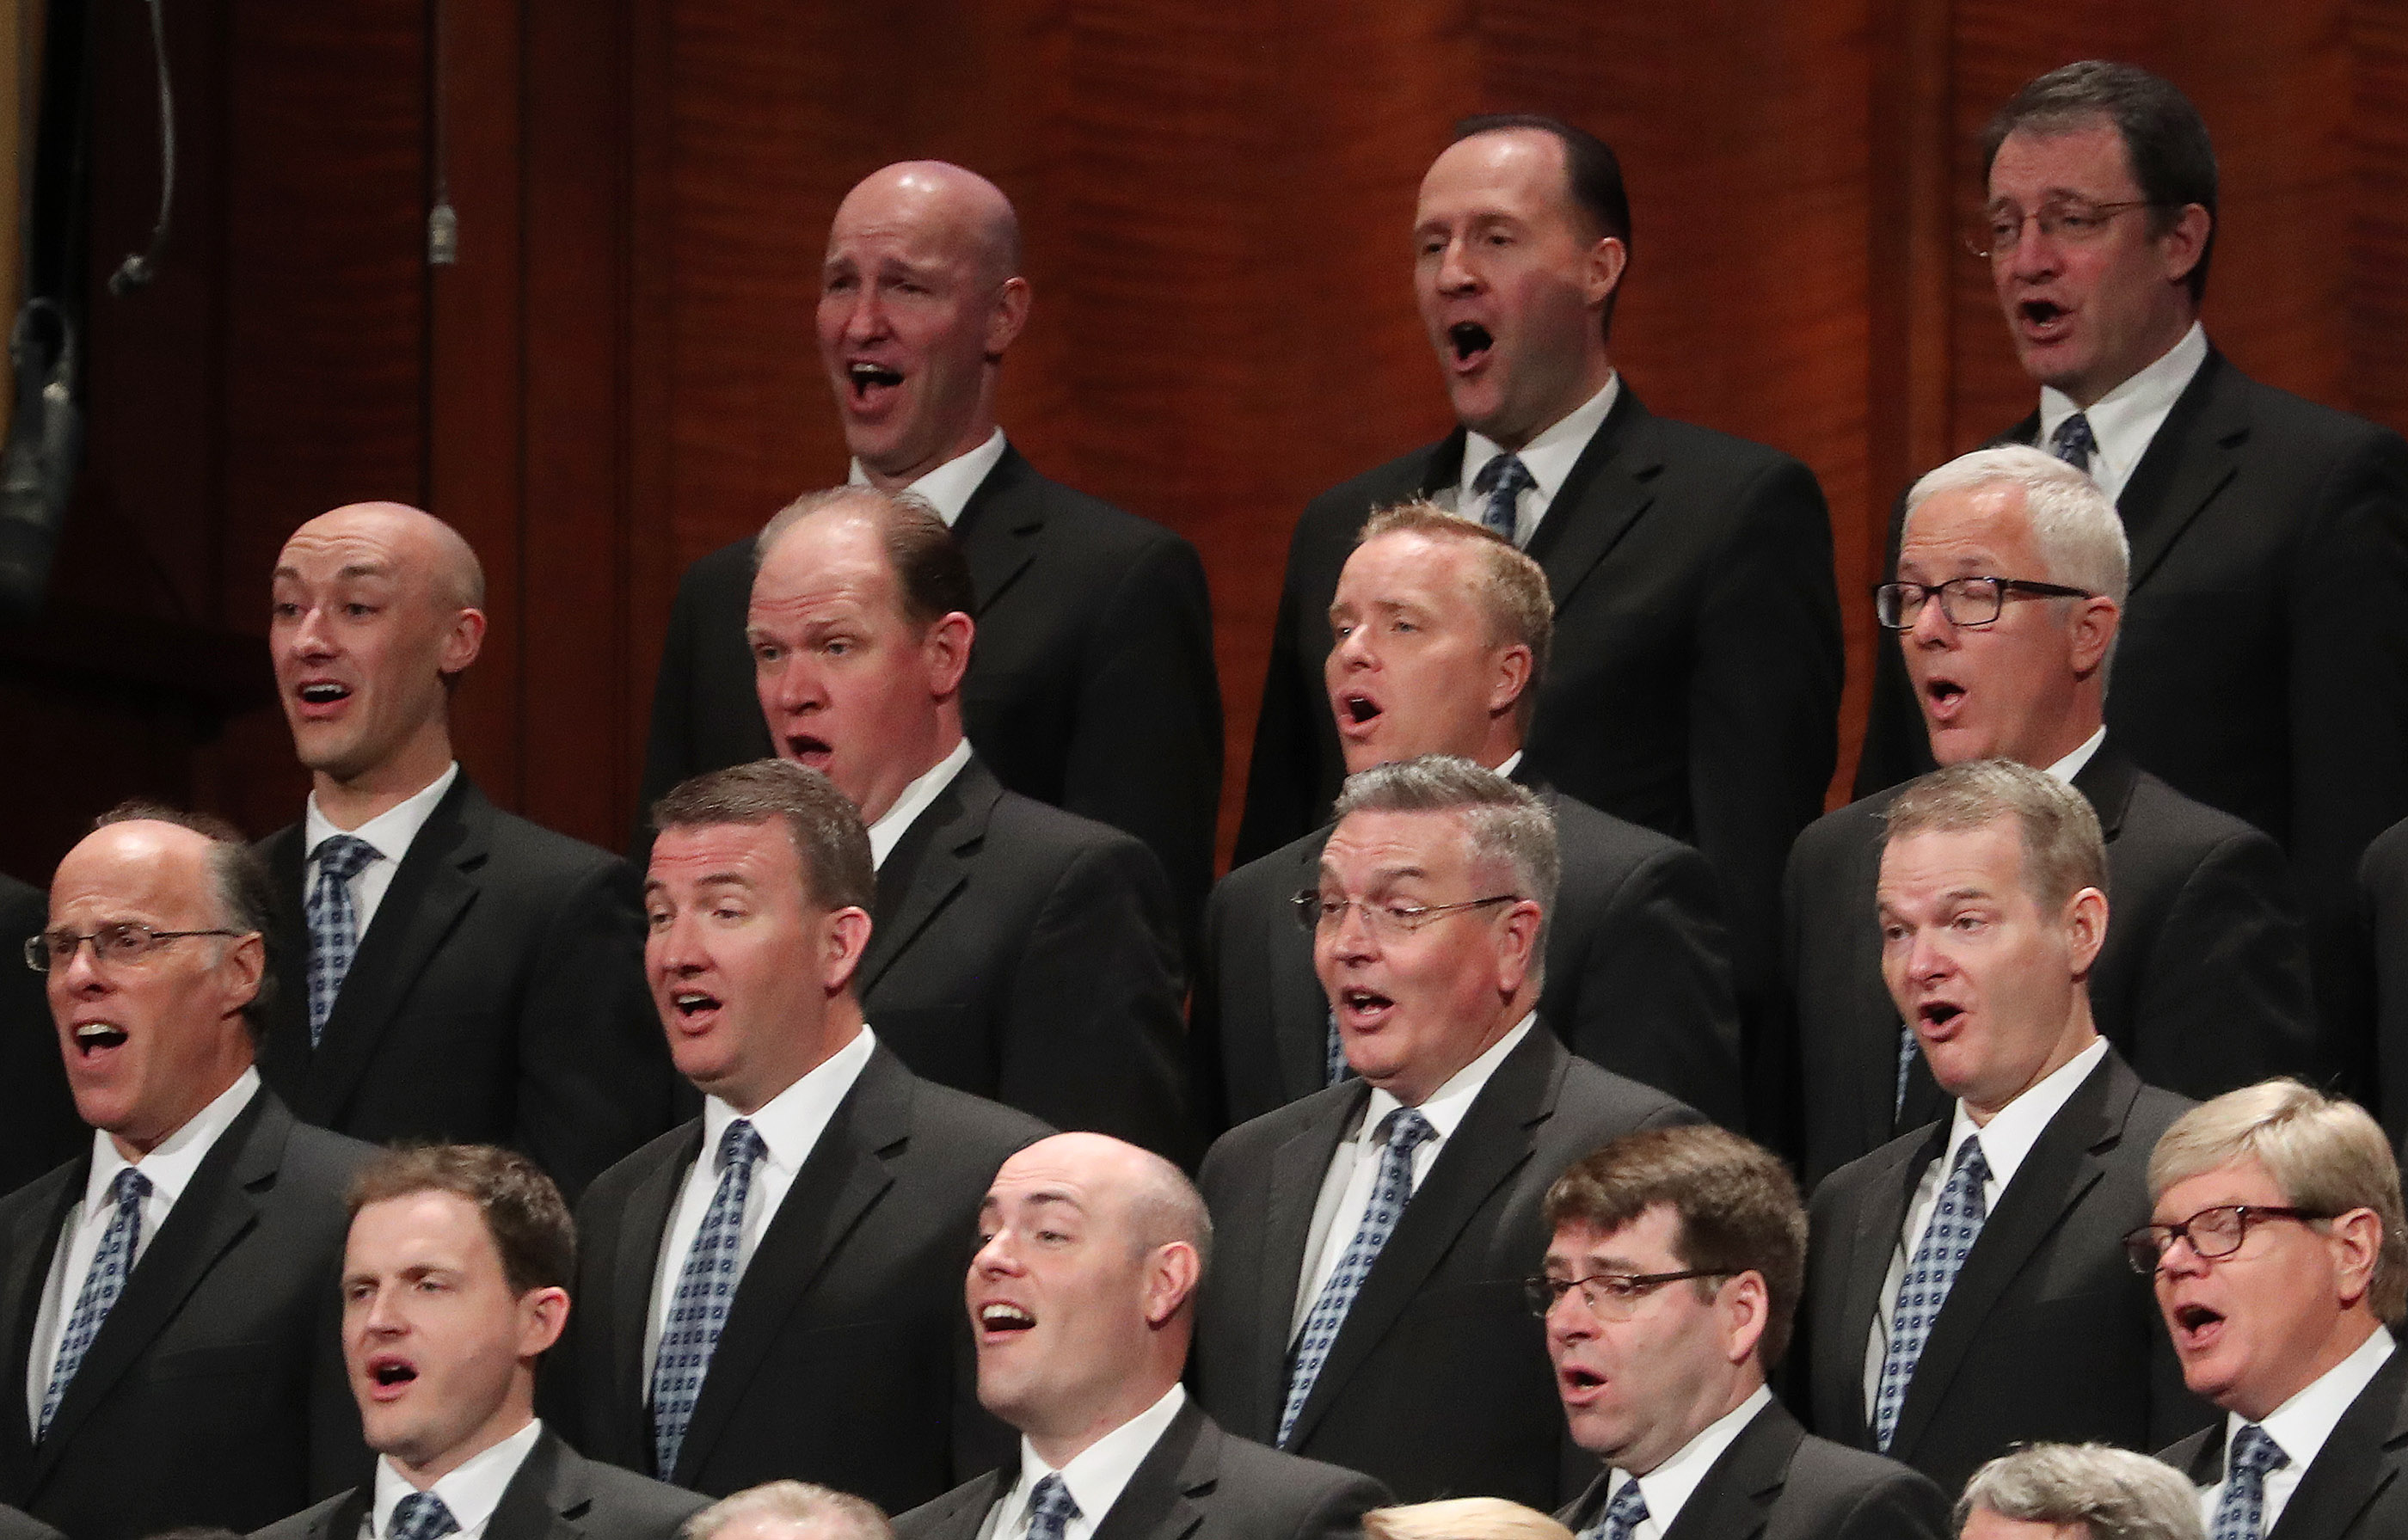 The Tabernacle Choir at Temple Square sings during the 189th Annual General Conference of The Church of Jesus Christ of Latter-day Saints in Salt Lake City on Saturday, April 6, 2019.